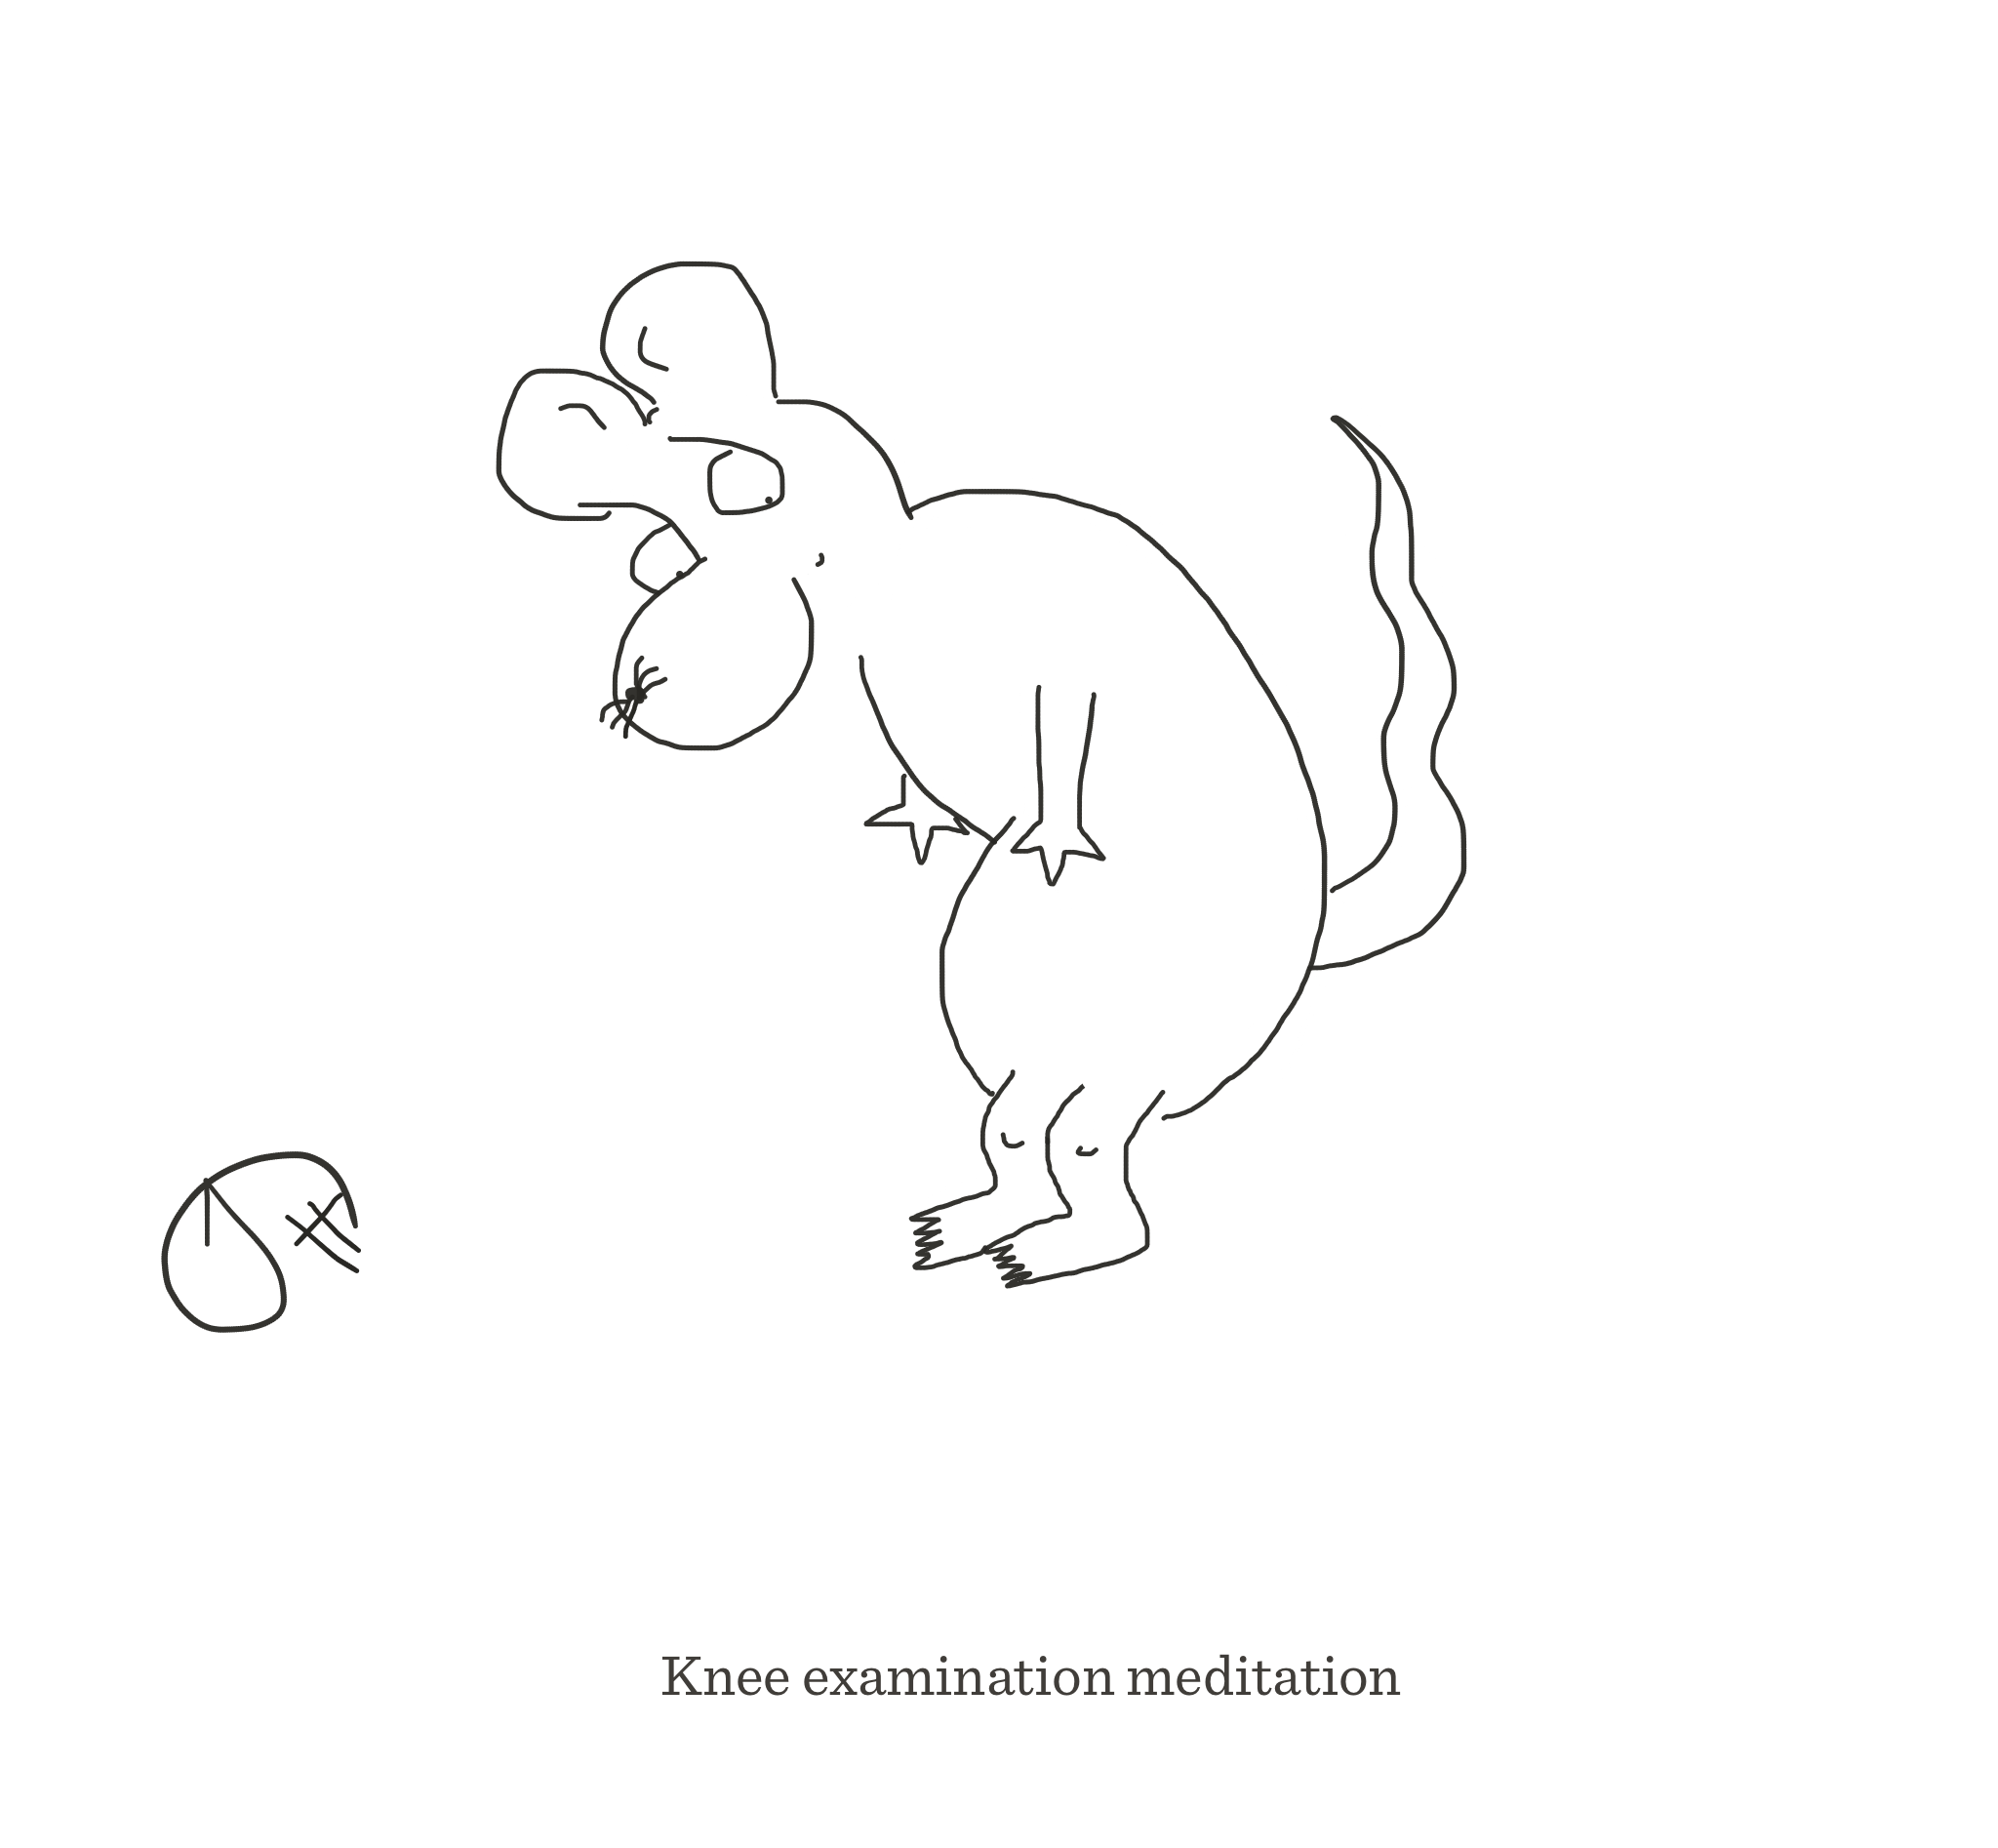 Knee examination meditation, The Happy Rat cartoon